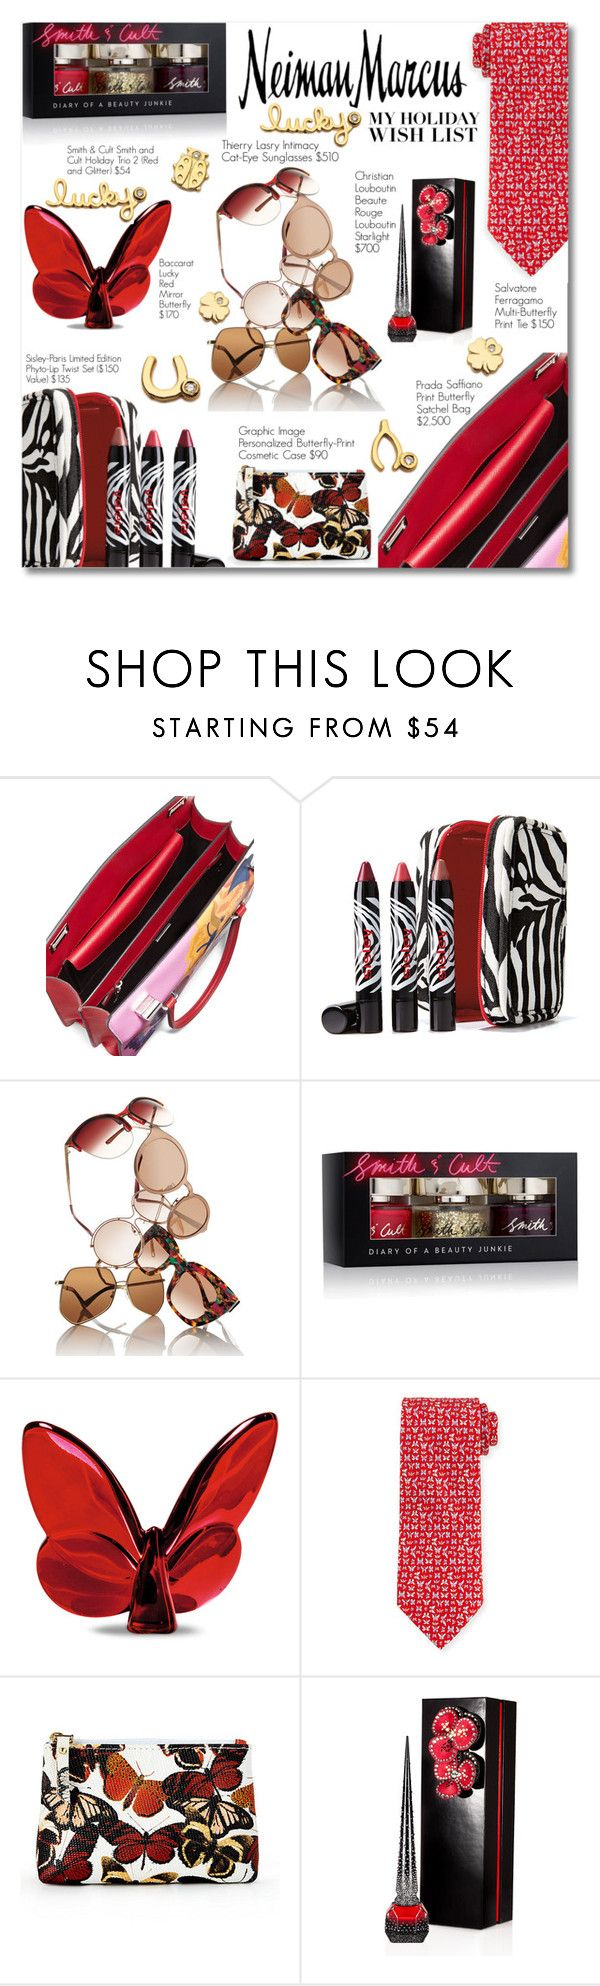 Ferragamo Neiman Marcus The Holiday Wish List Neiman Marcus Contest Entry